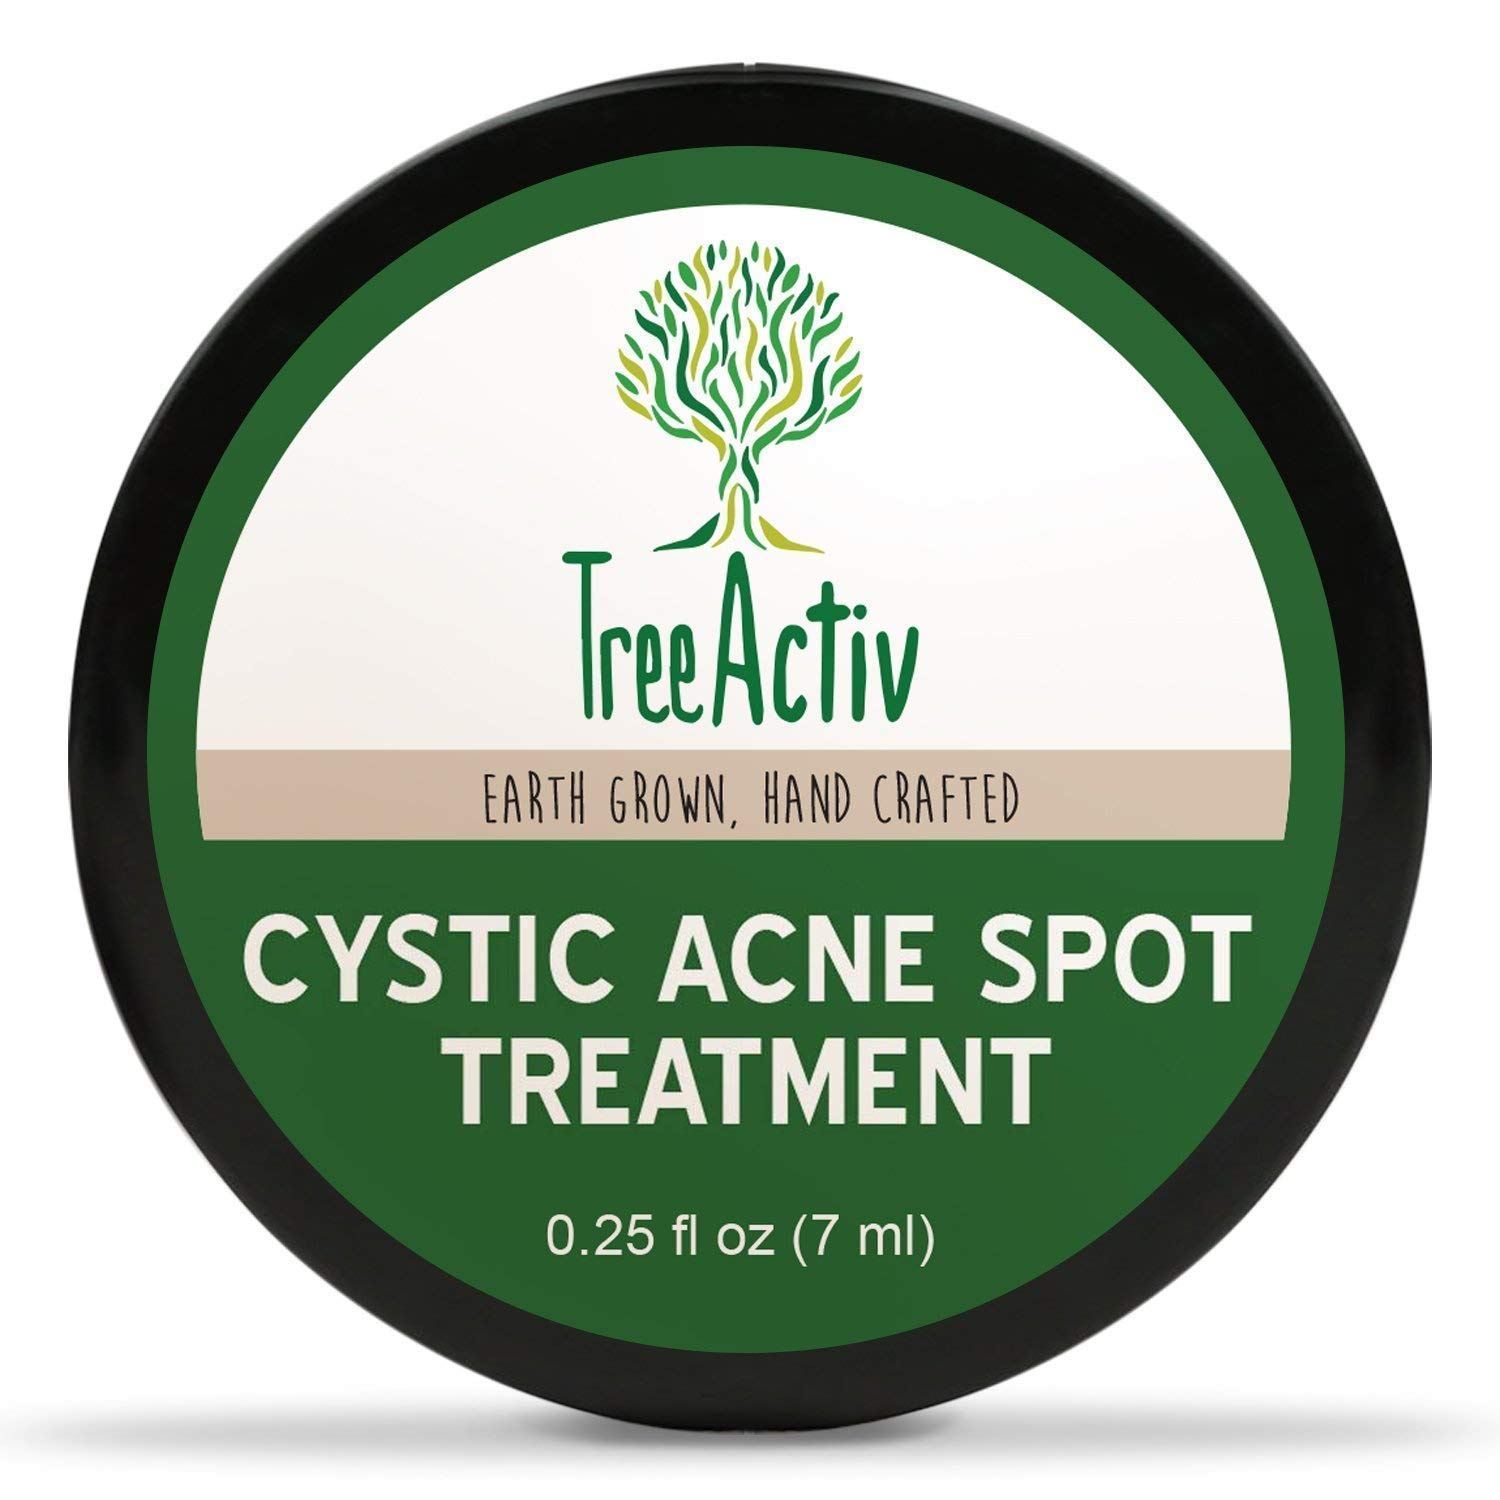 TreeActiv Cystic Acne Spot Treatment, Best Extra Strength Fast Acting Formula for Clearing Severe Acne from Face and Body, Gentle Enough for Sensitive Skin, Adults, Teens, Men, Women (Full Size)